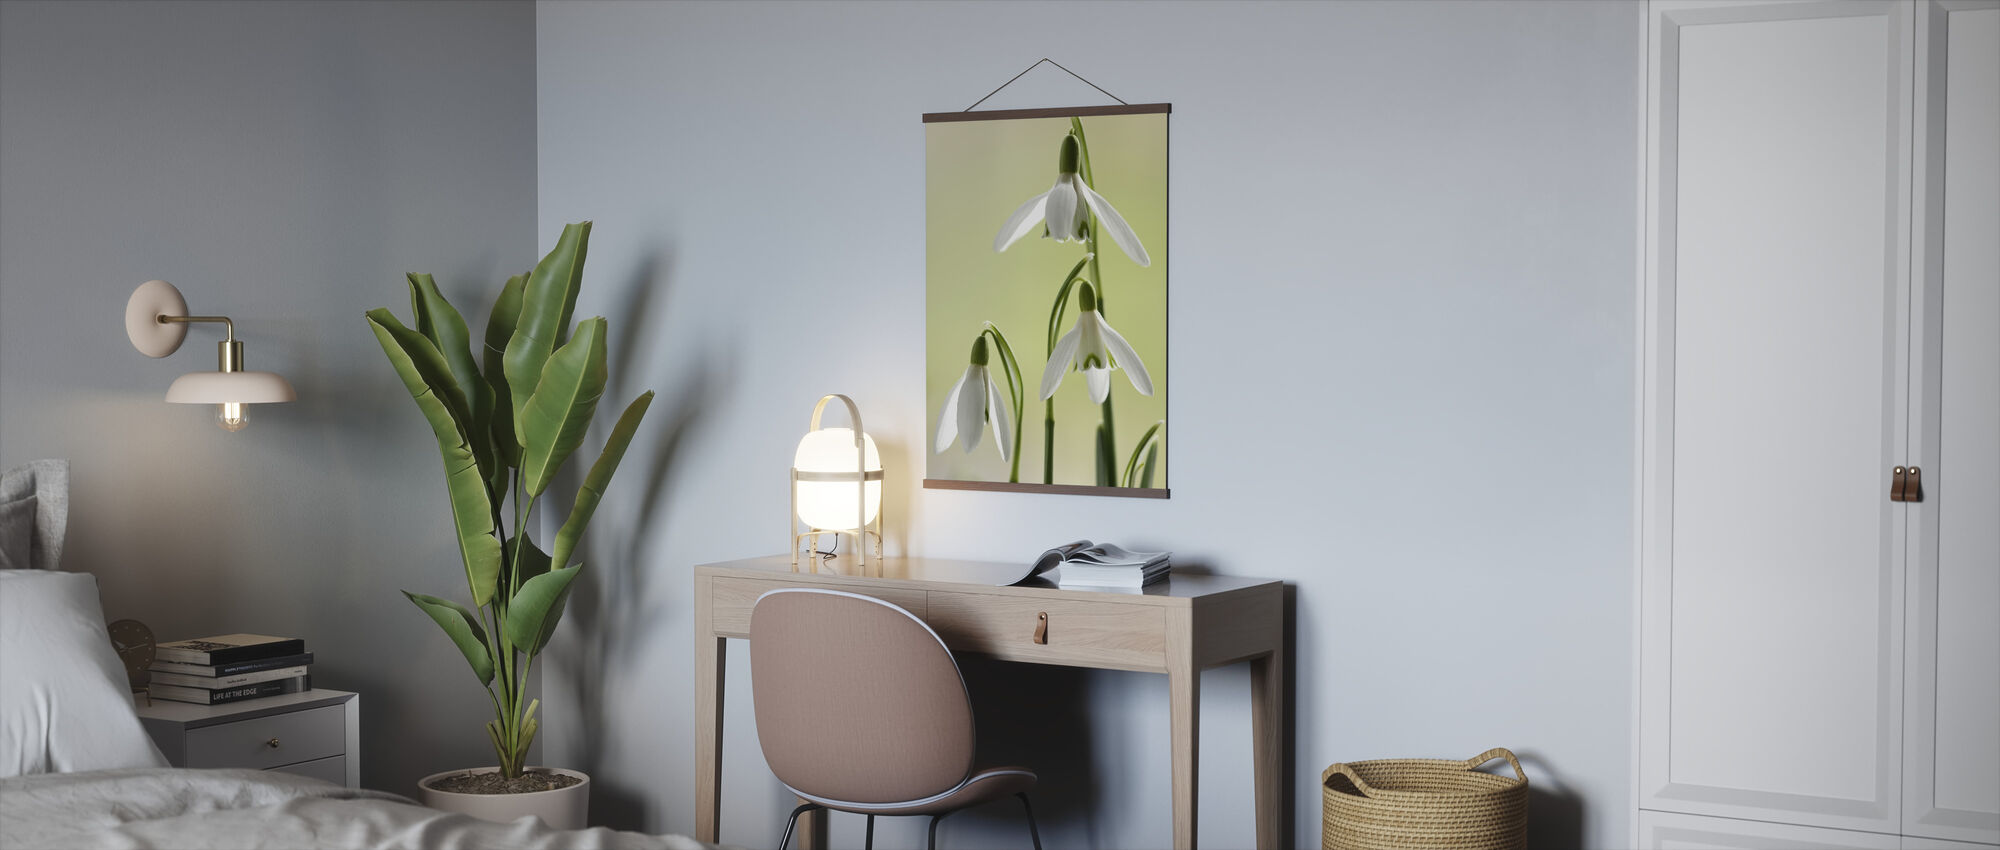 Snowdrop - Poster - Office